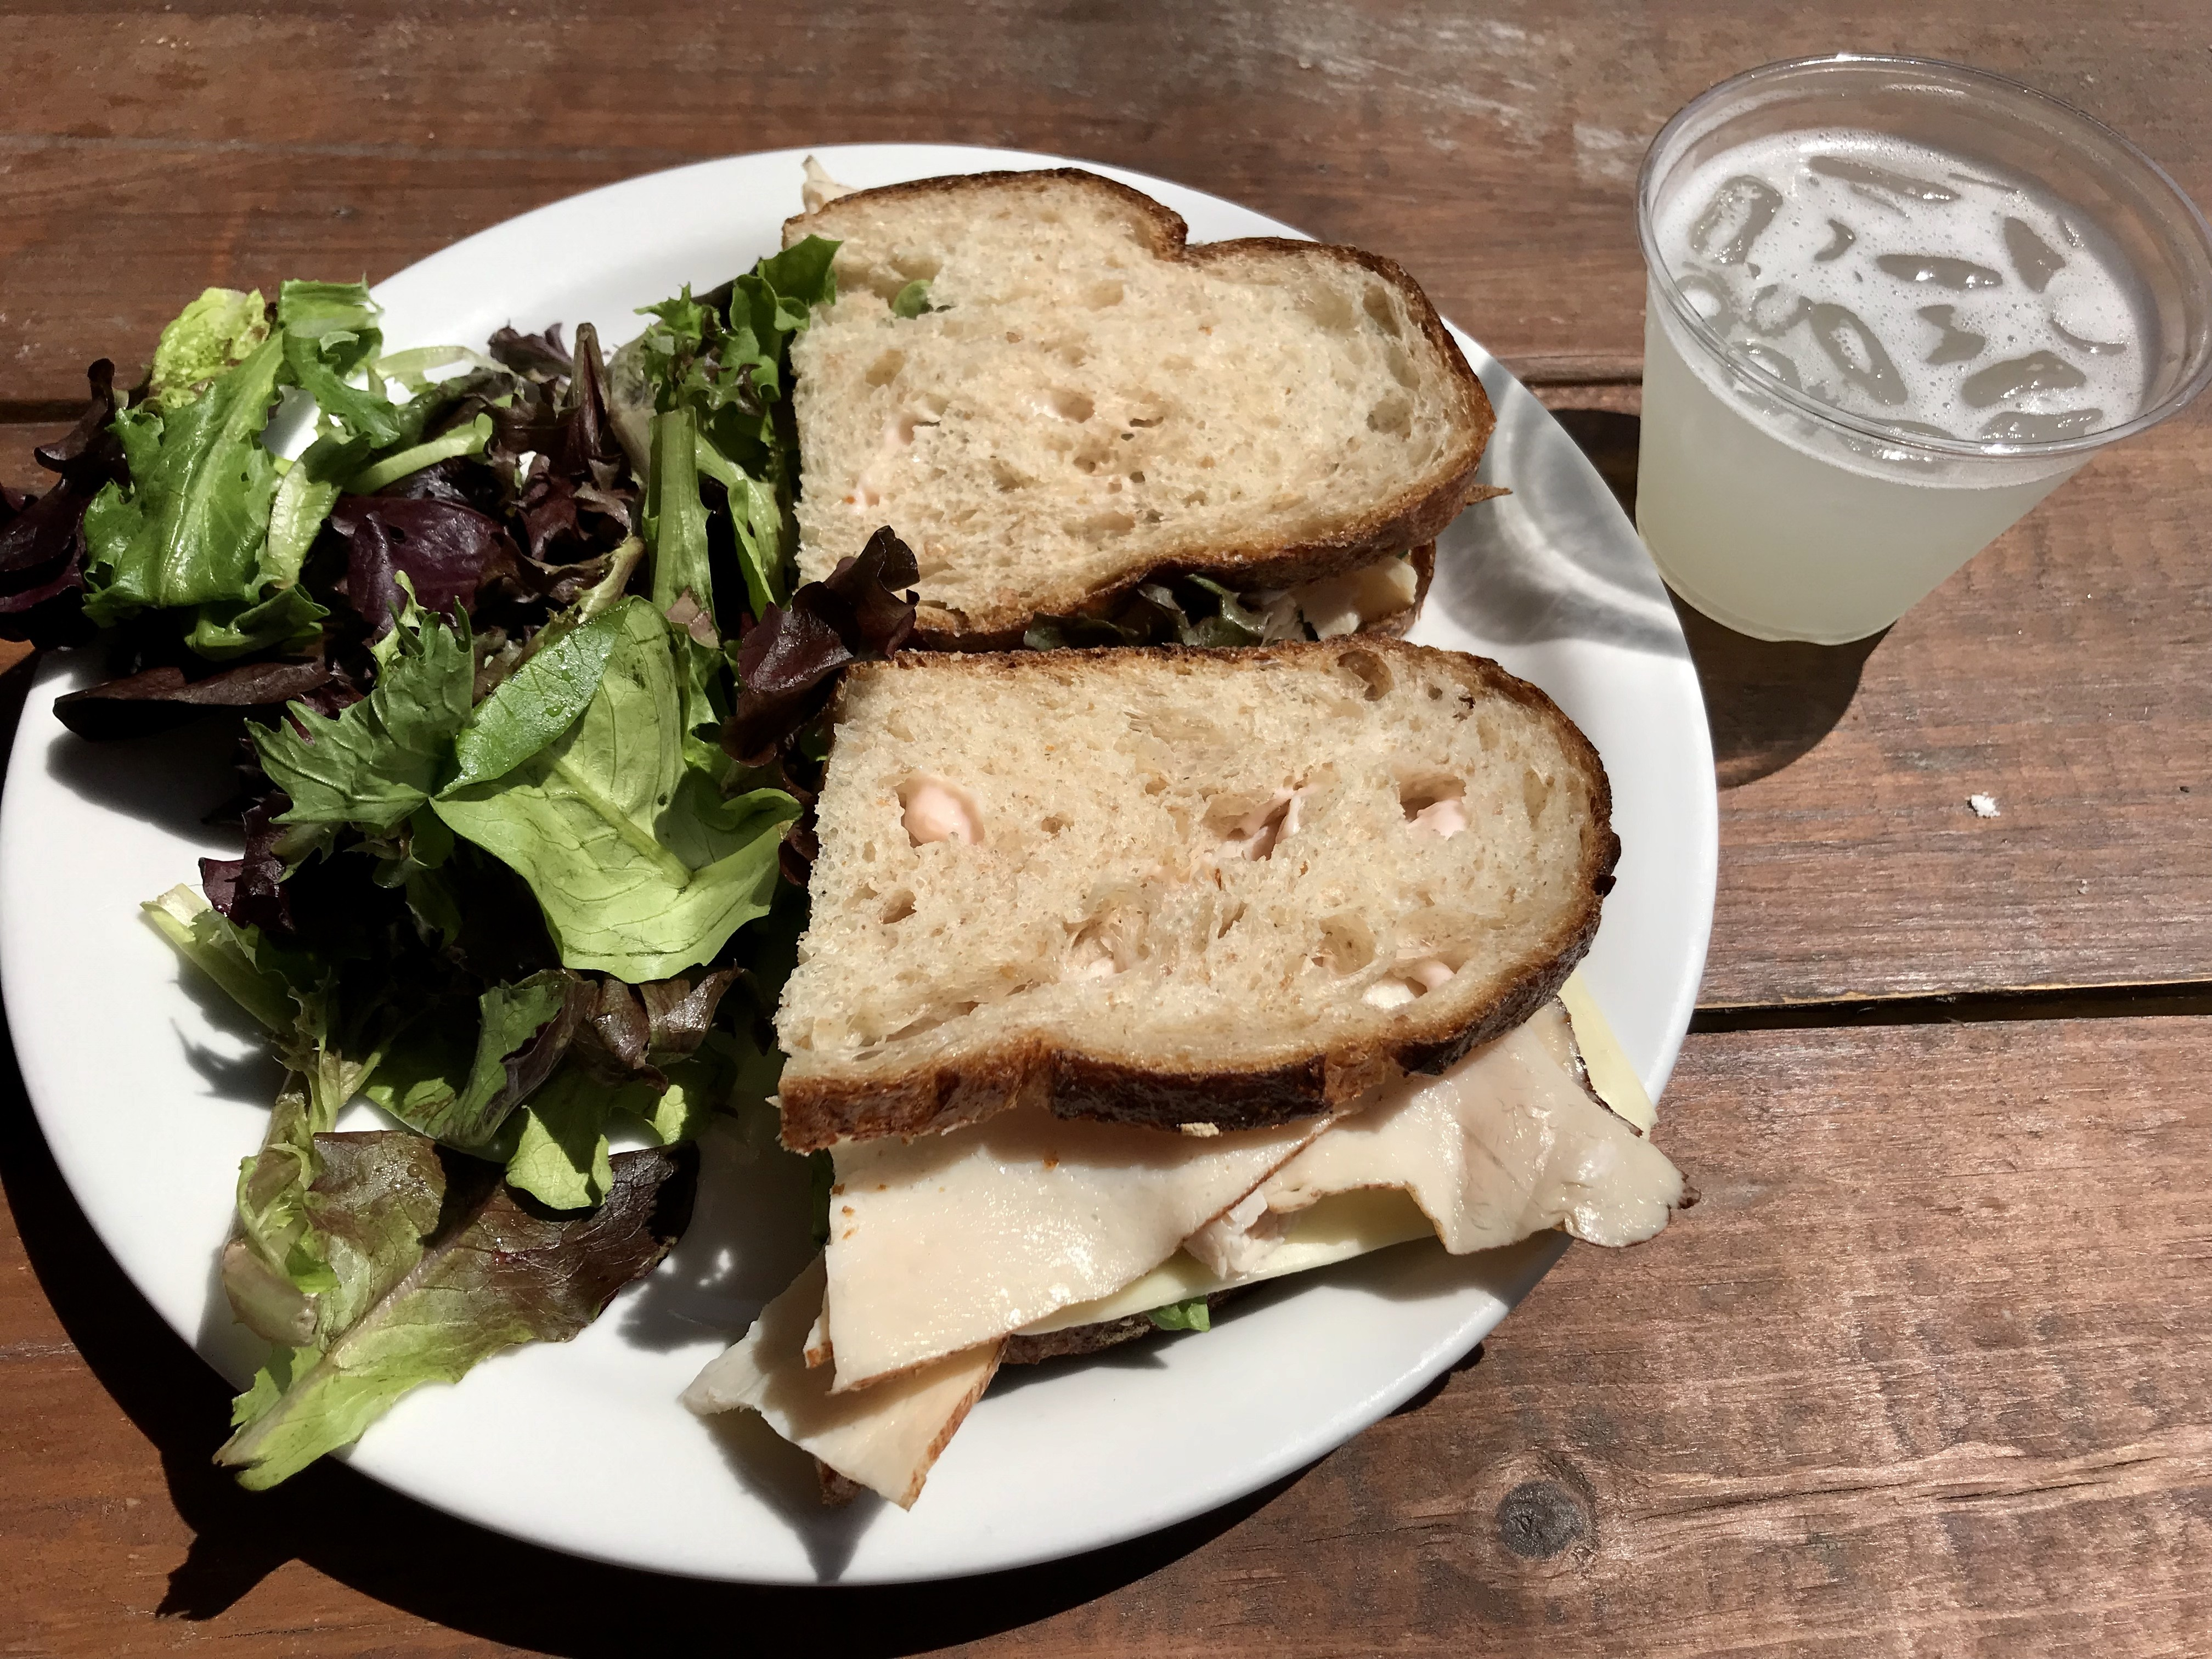 Dining on a Dime: August First Bakery